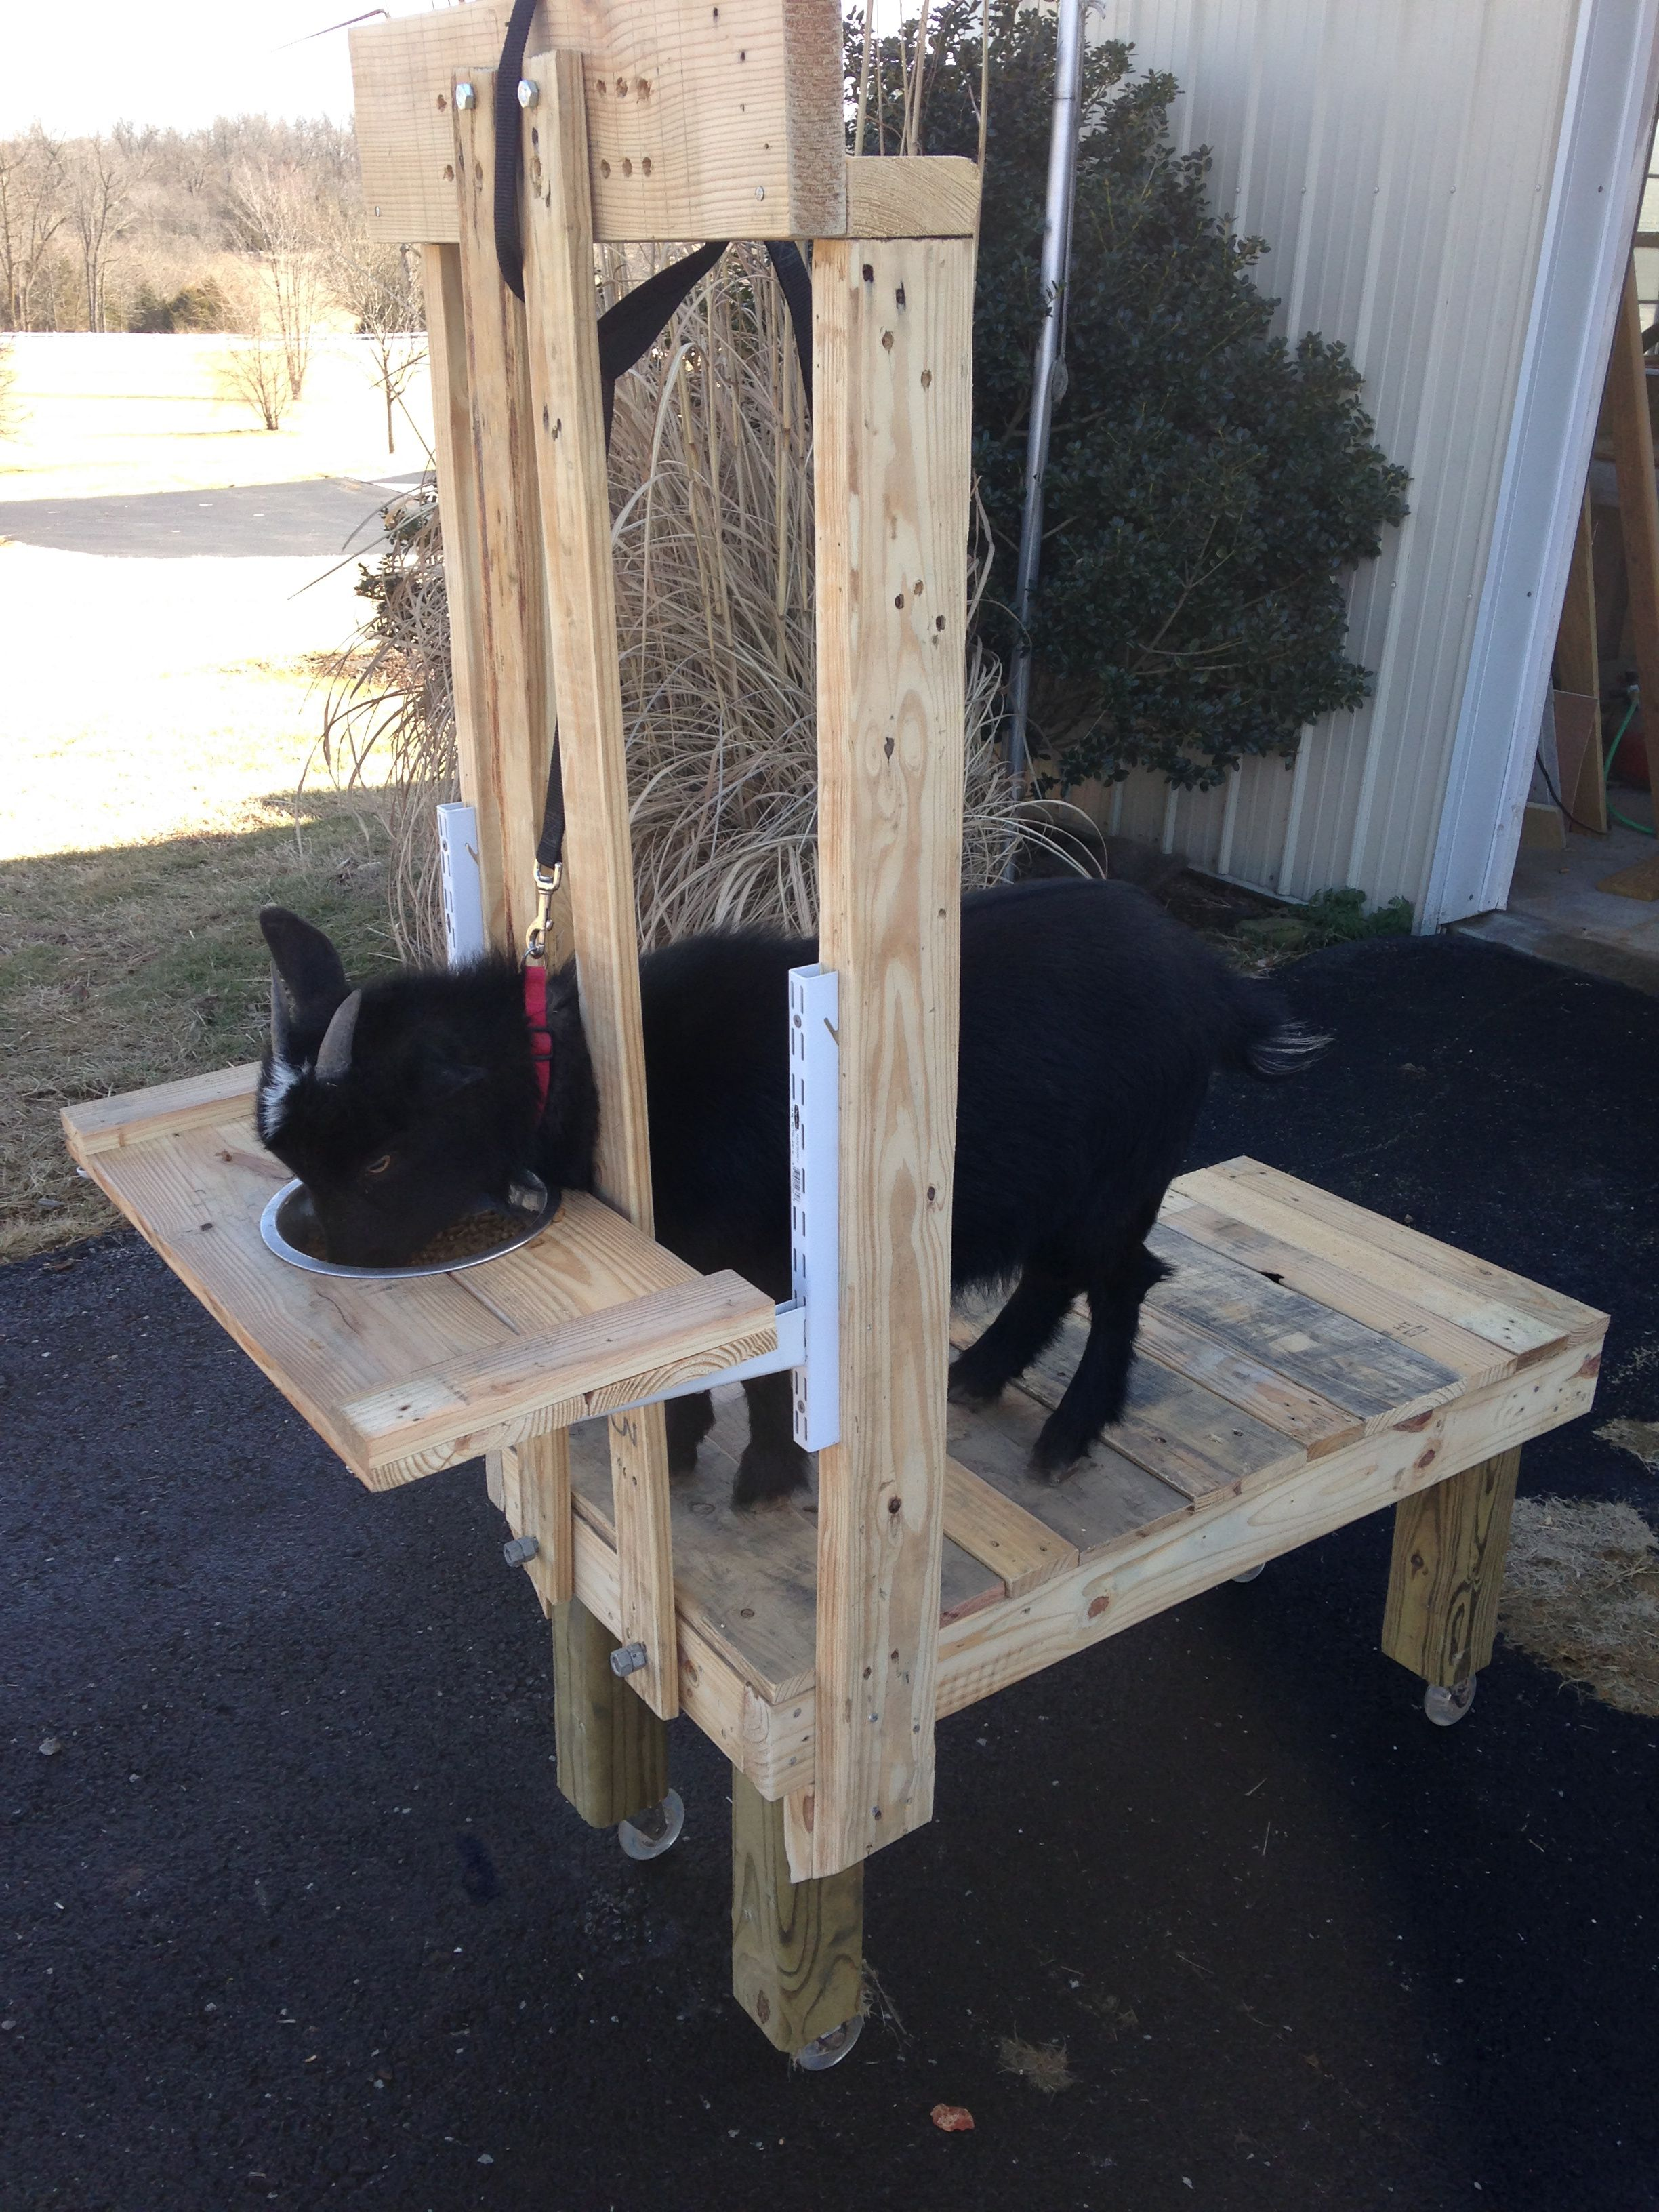 Adjustable Goat Milking Stand Built From Pallets